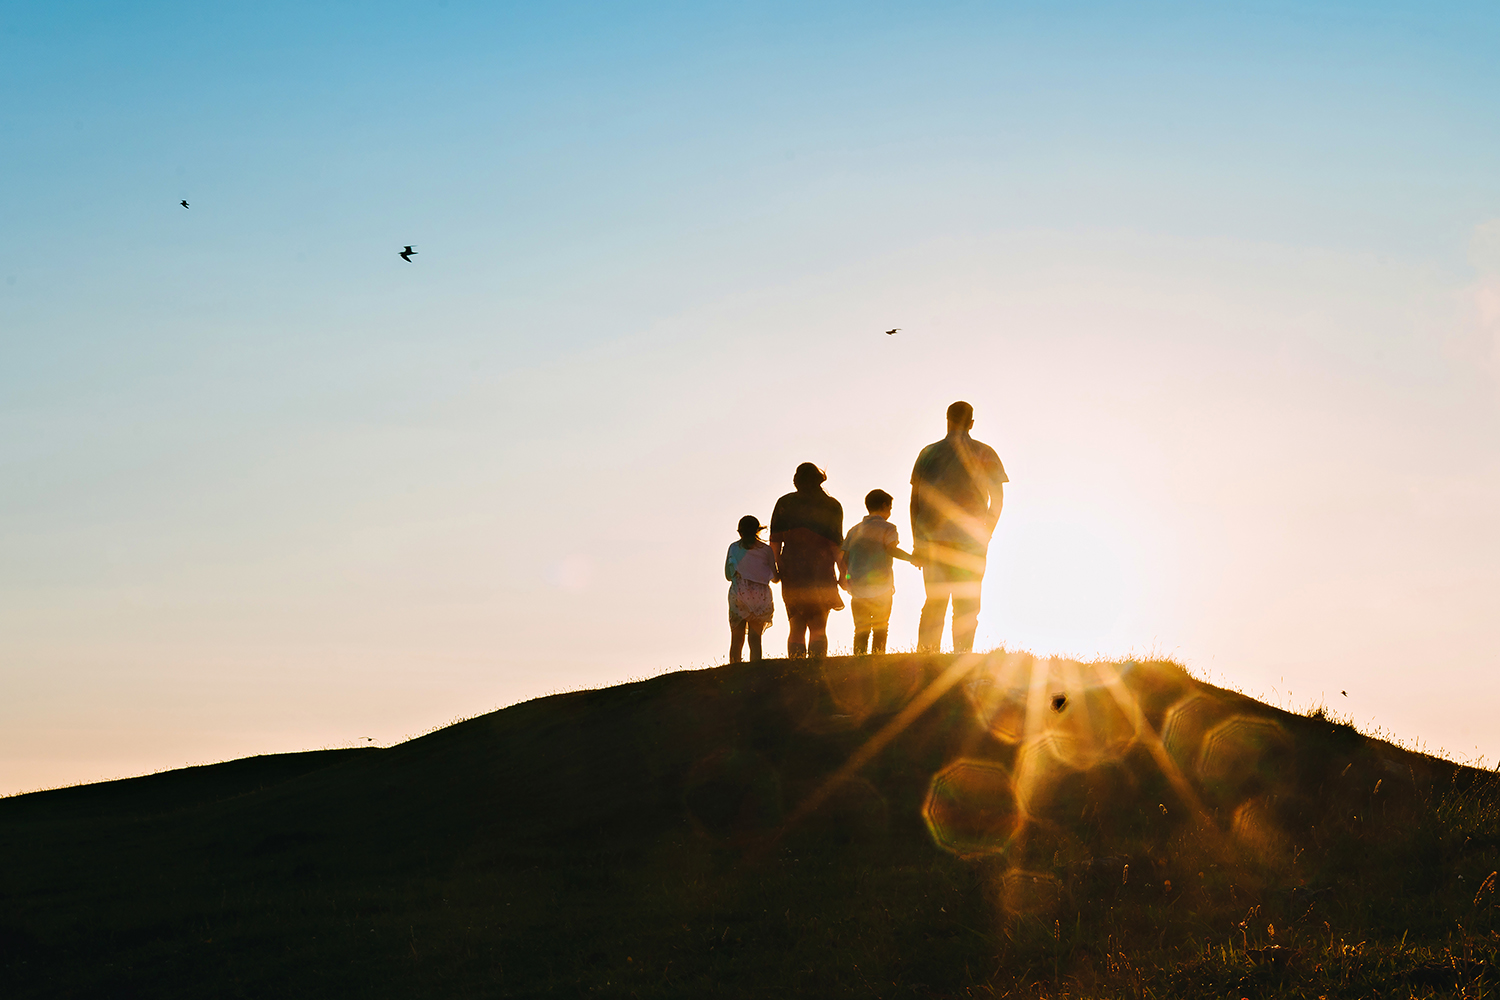 silhouette image of a family of 4 at sunset on the beach